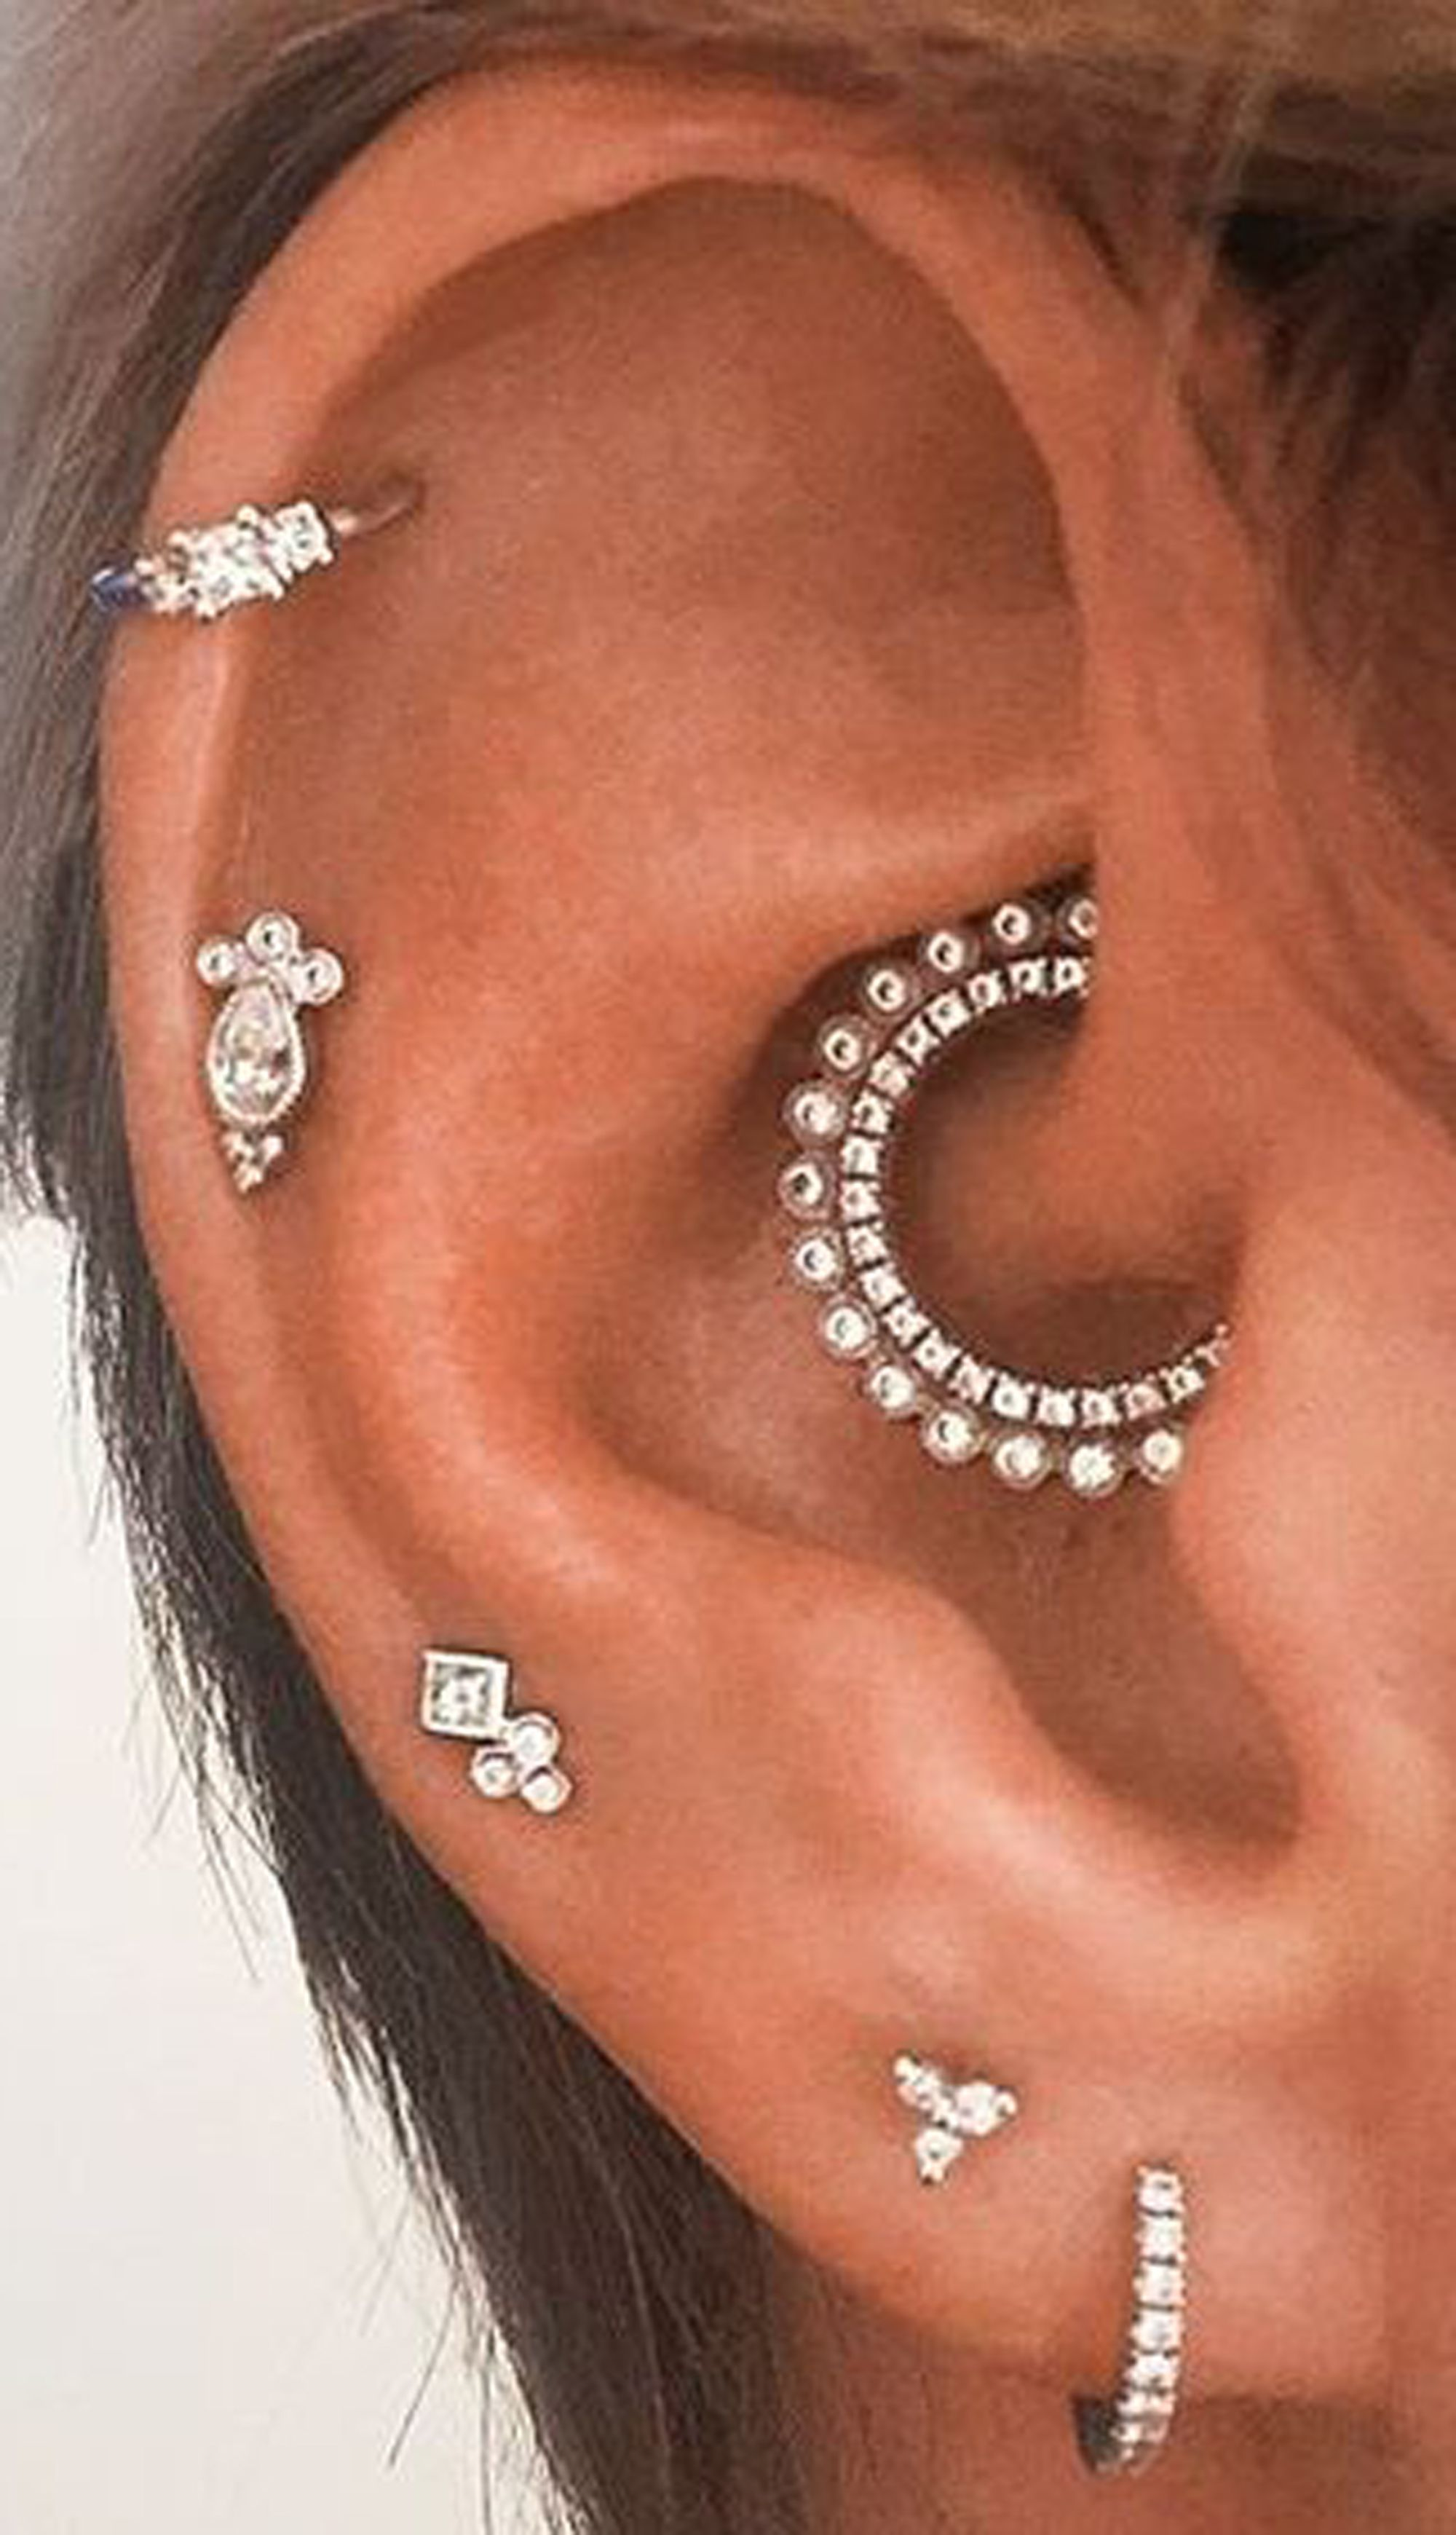 e4c3f1672cf7 Cute Multiple Ear Piercing Ideas for Cartilage Helix Daith Jewelry Earrings  www.MyBodiArt.com